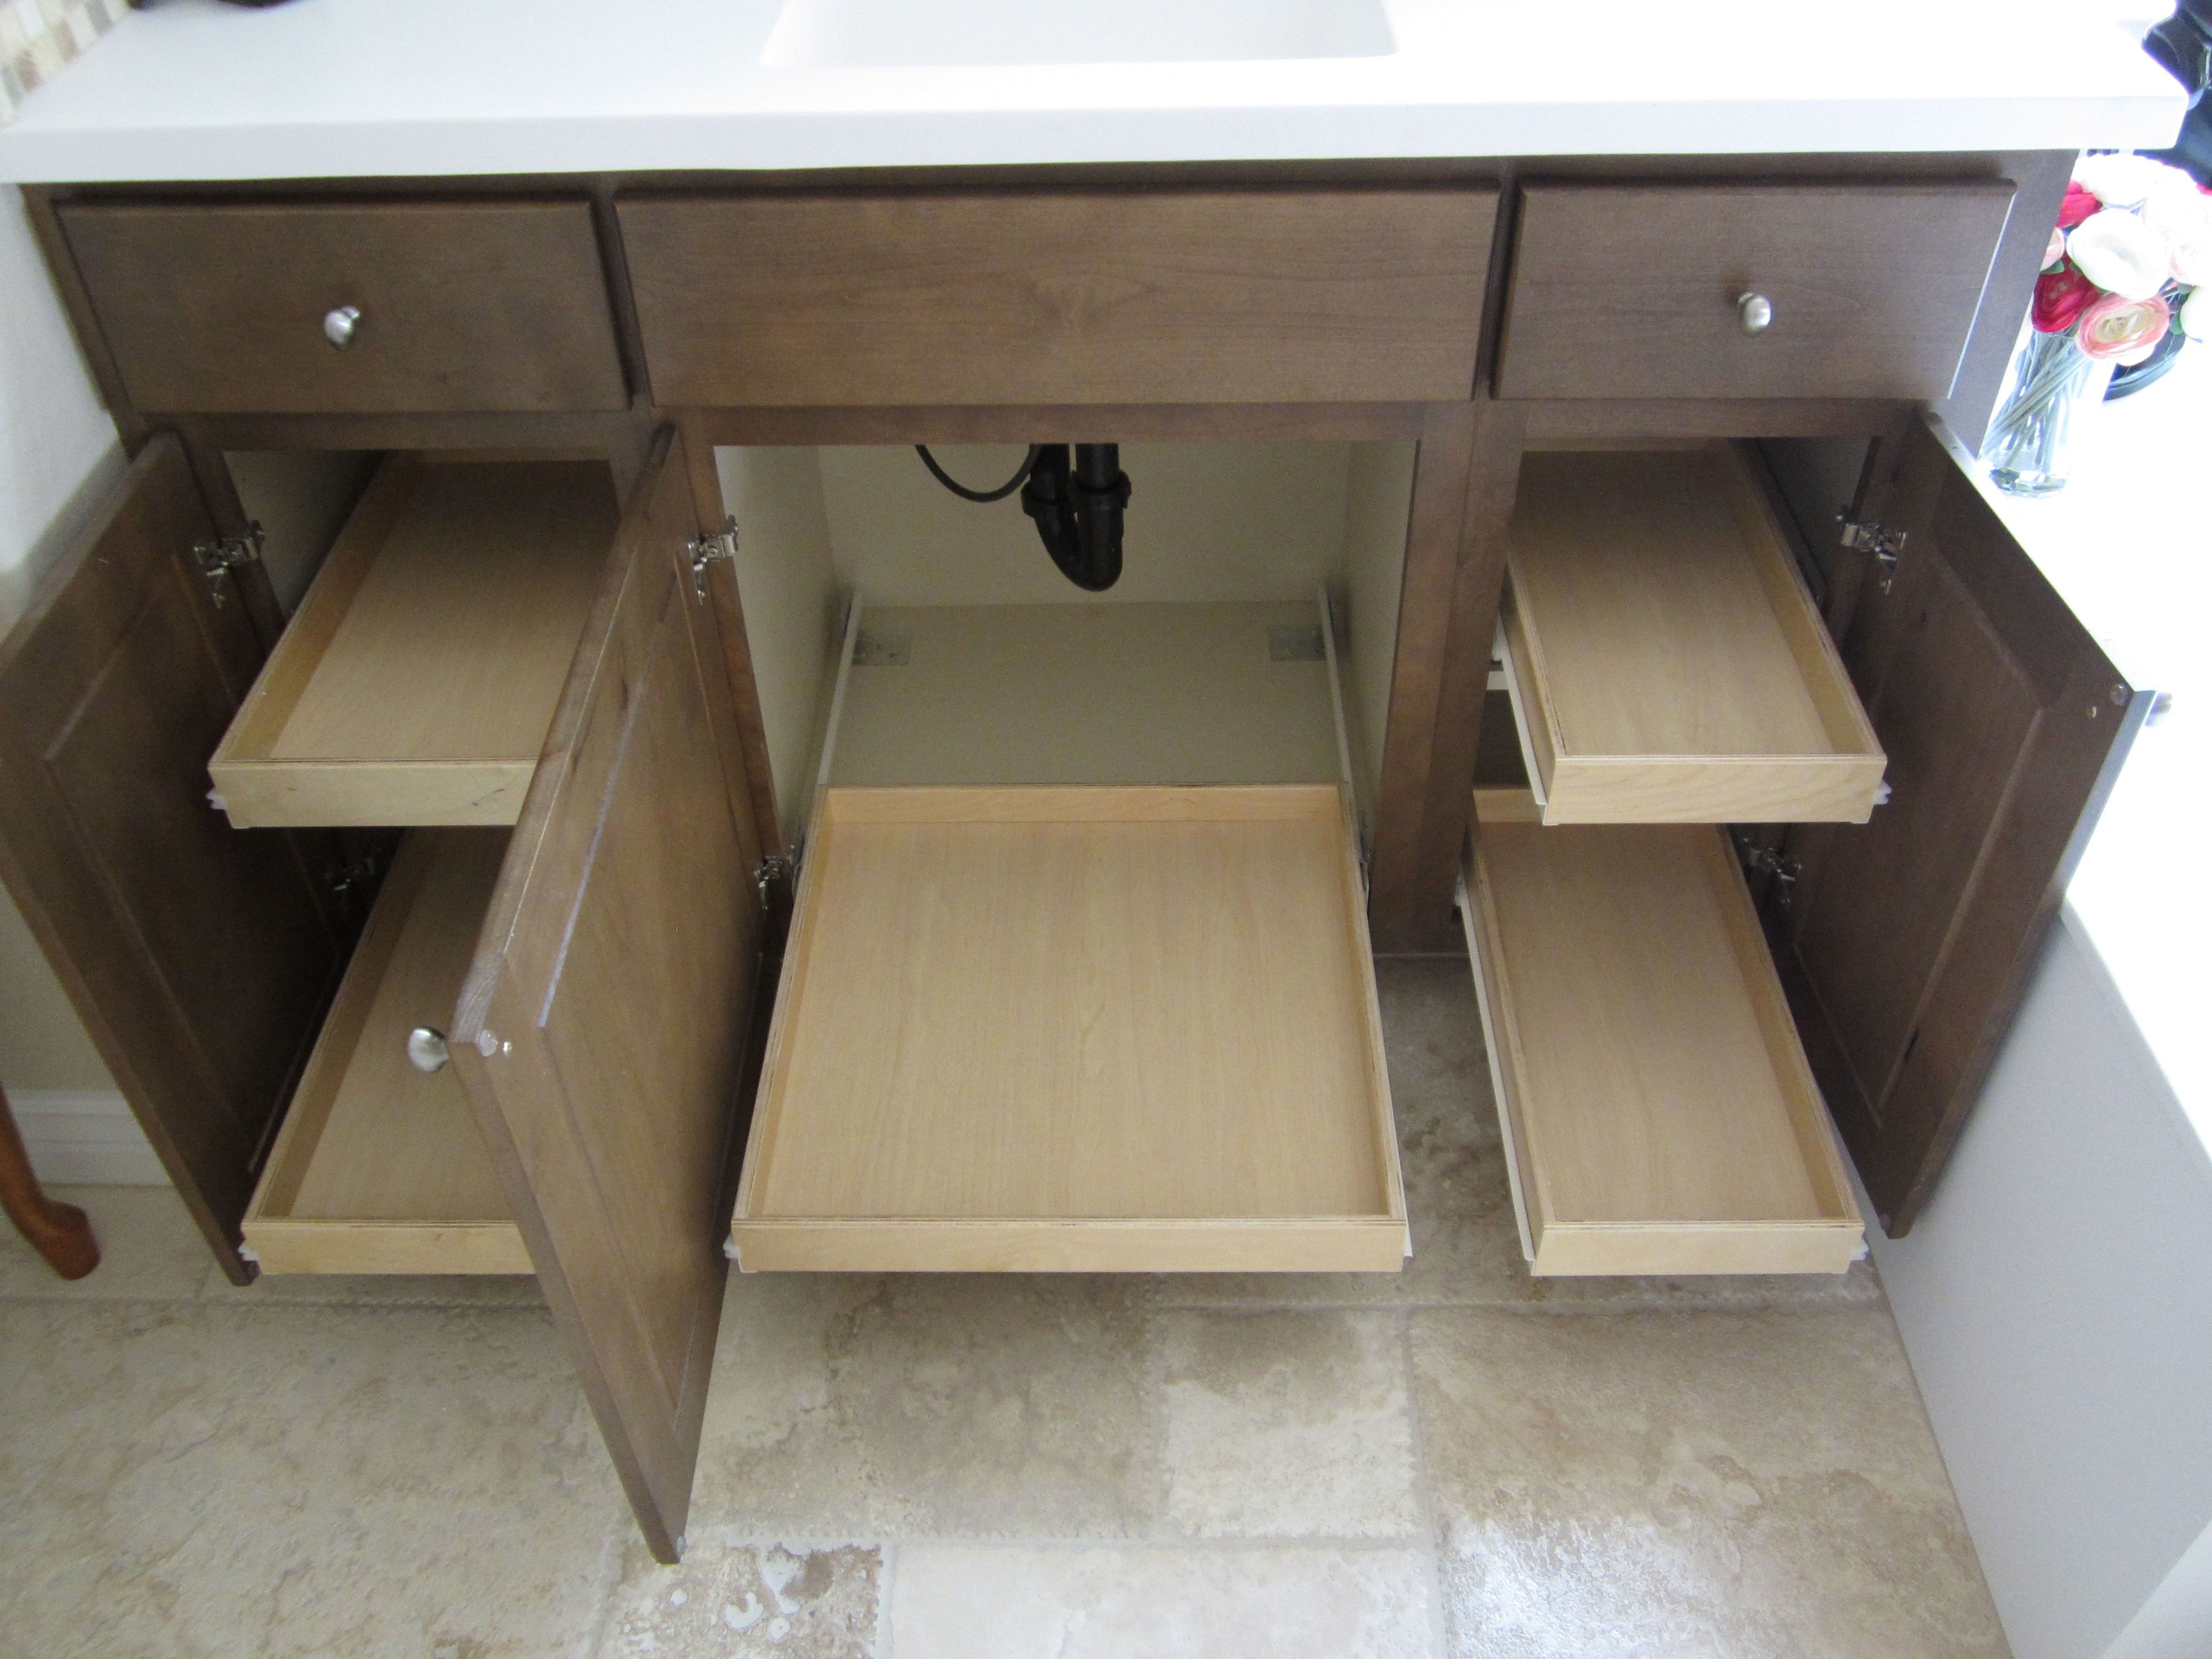 Pull Out Shelves For Kitchen And Pantry Made To Fit Bathroom Sink Diy Diy Kitchen Cupboards Under Bathroom Sinks